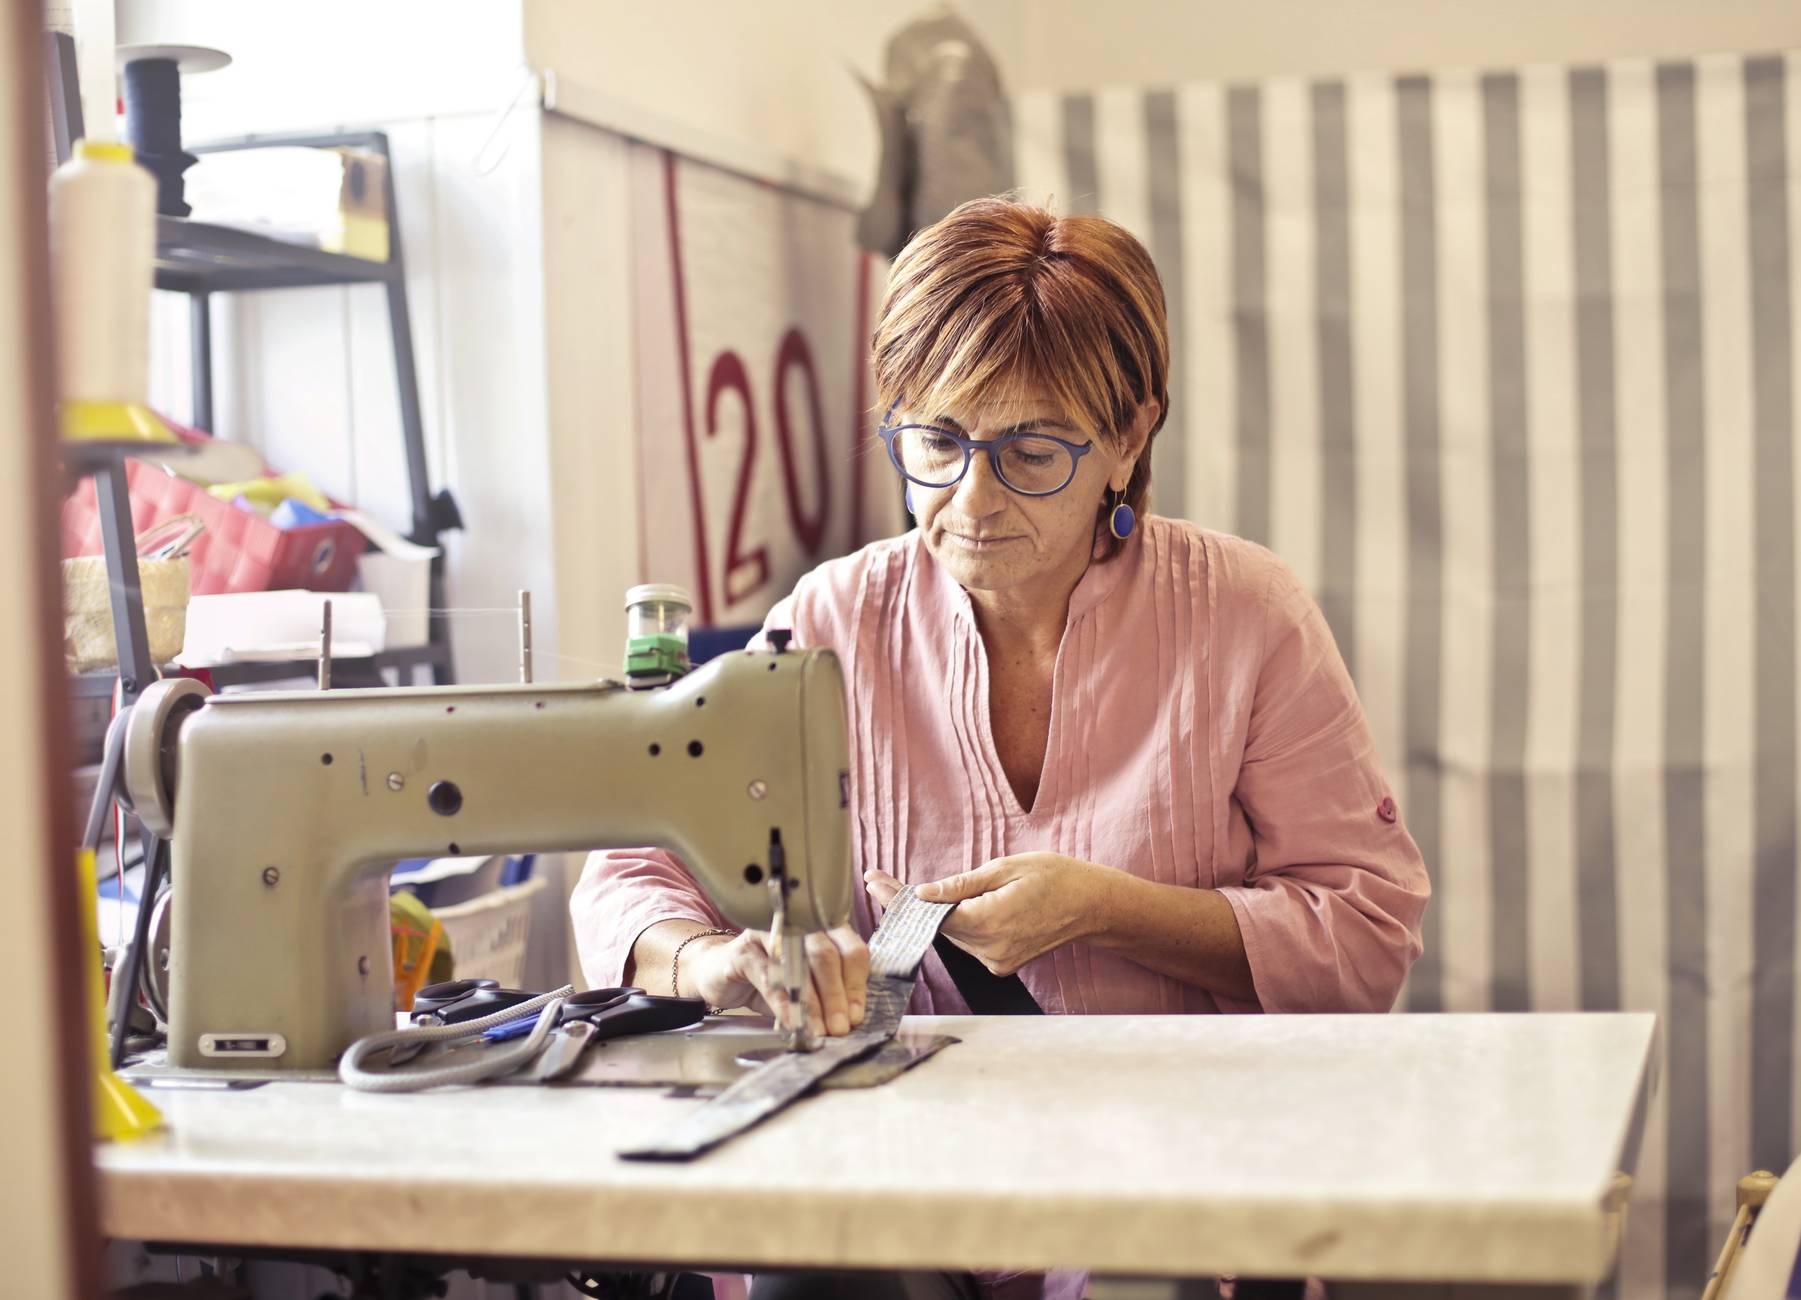 photo of woman using sewing machine